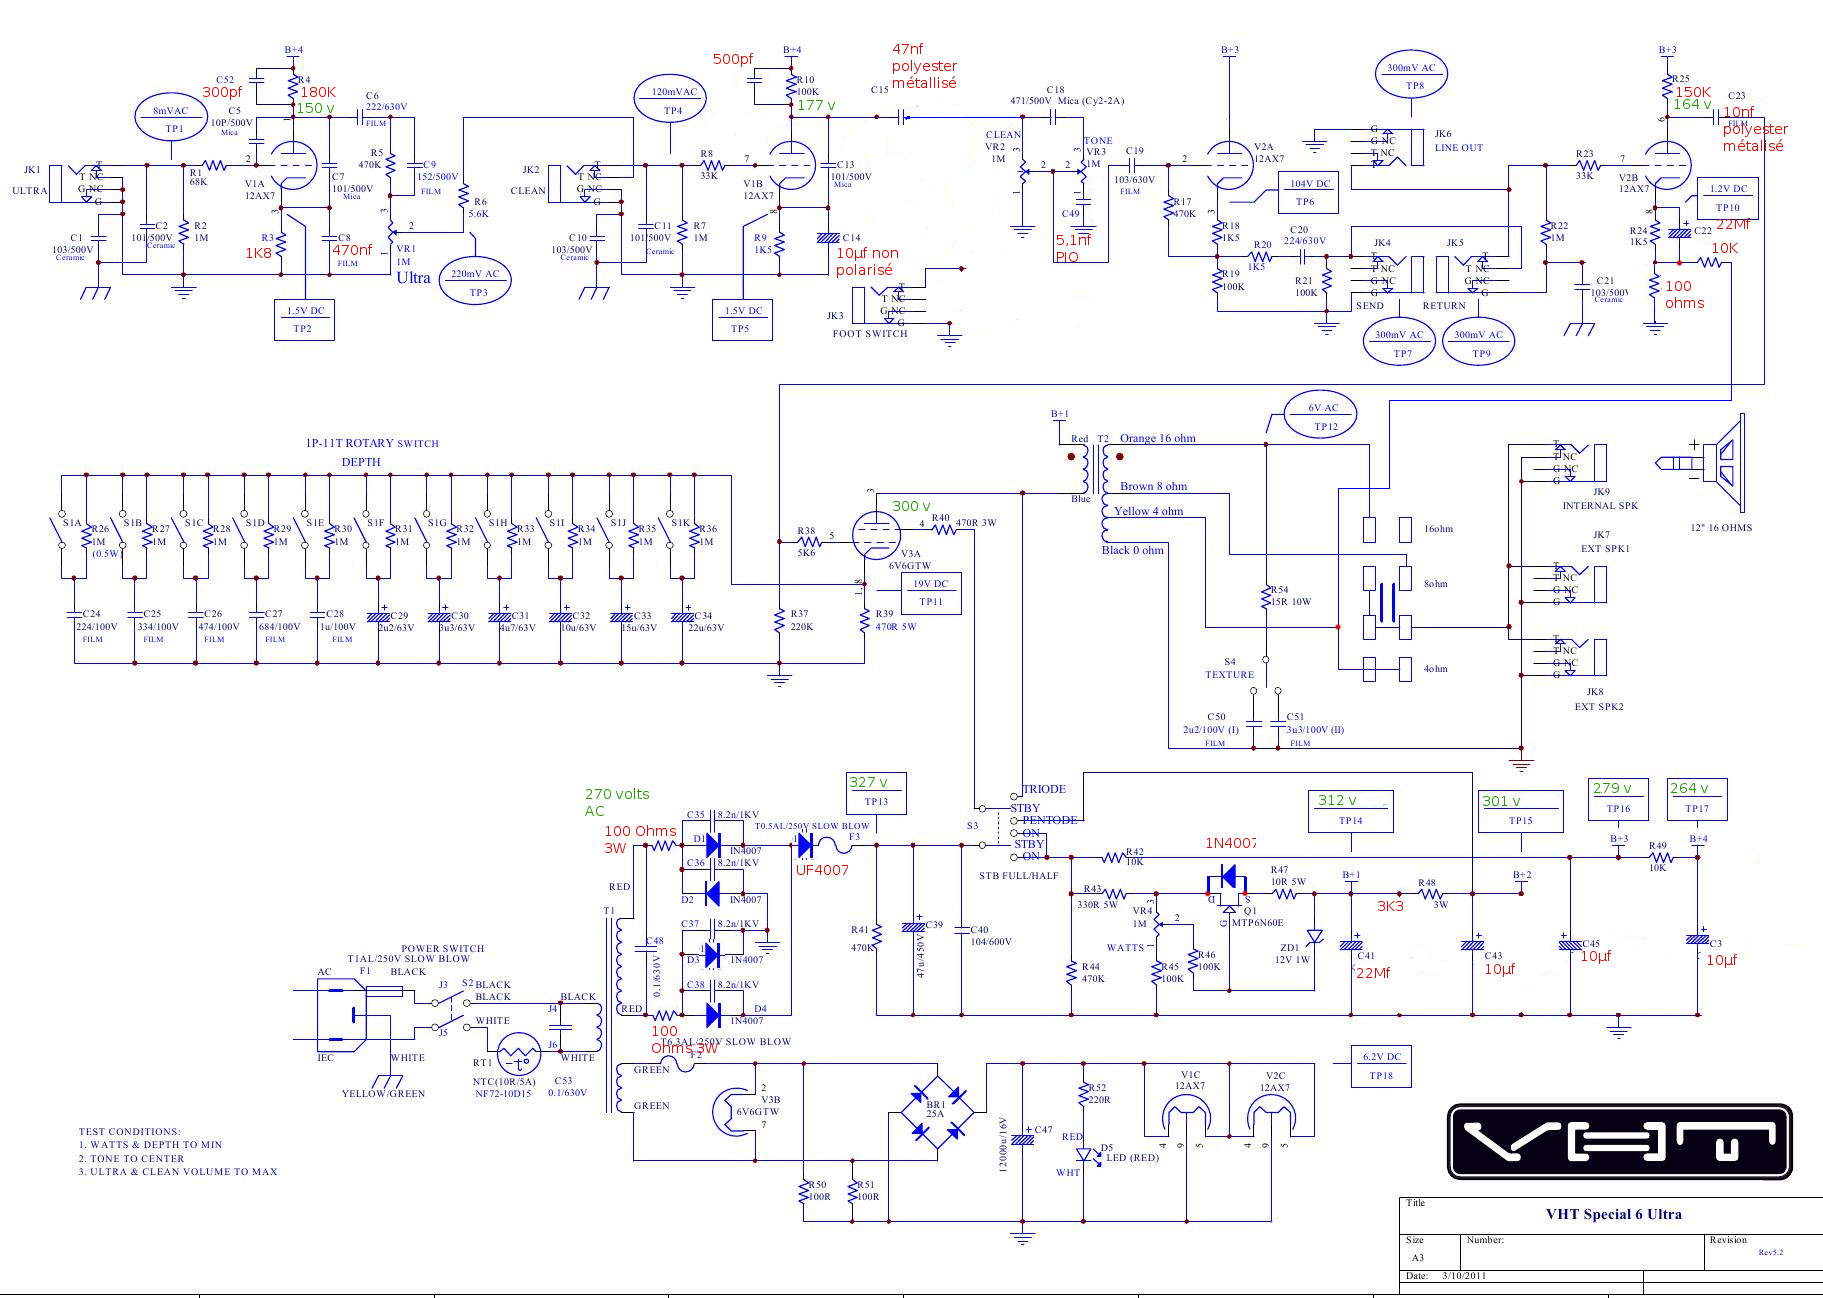 Vht Mods 6 Subwoofer Wiring Diagram The Non Ultra Special Schematic